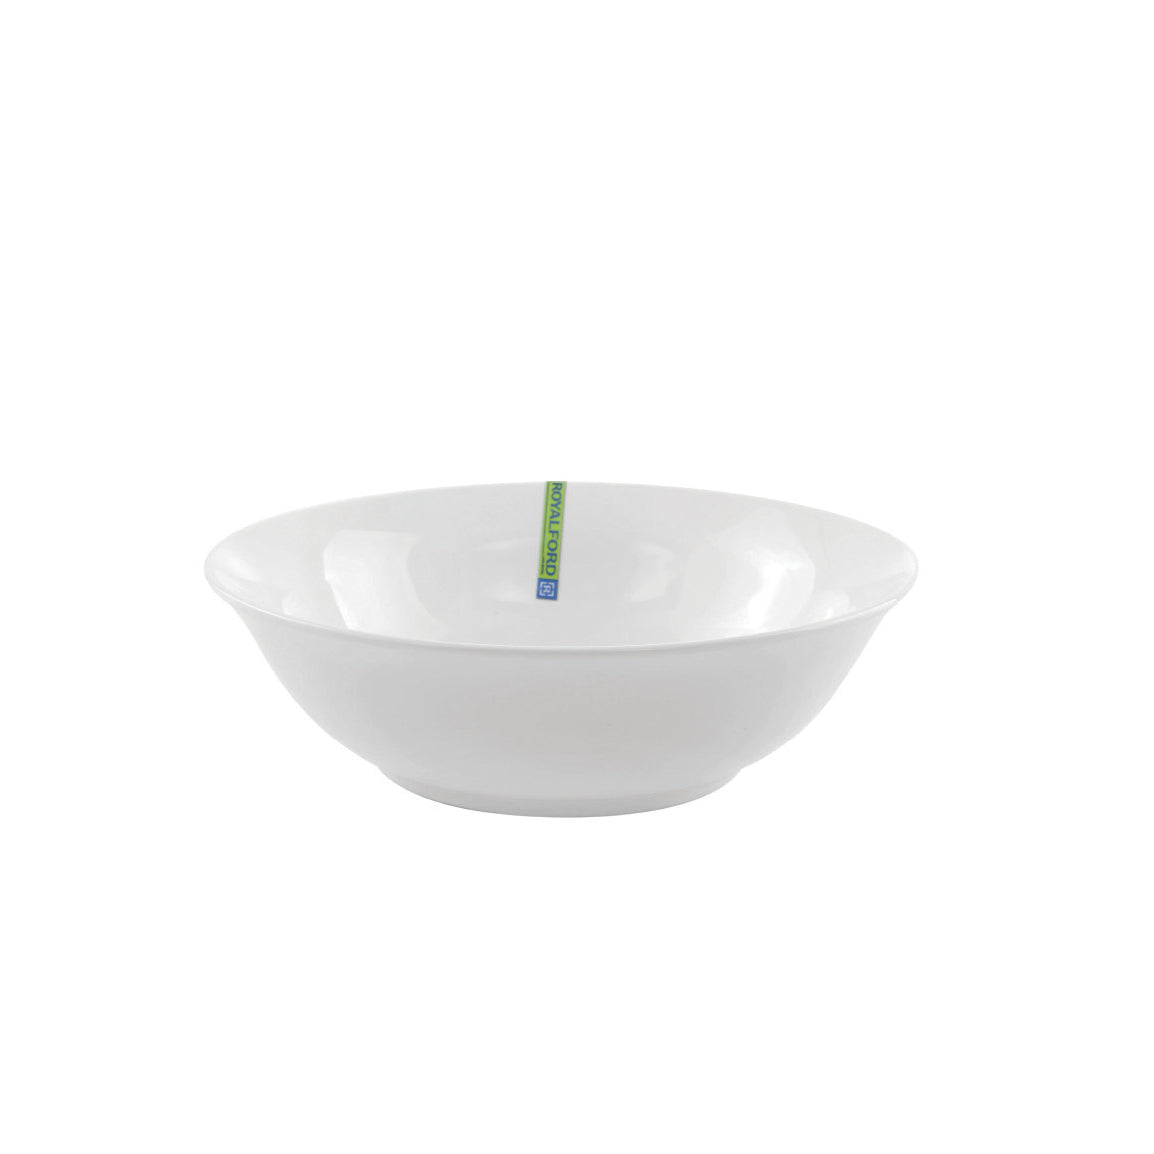 Royalford RF8015 Magnesia Porcelain Bowl, 6 Inch